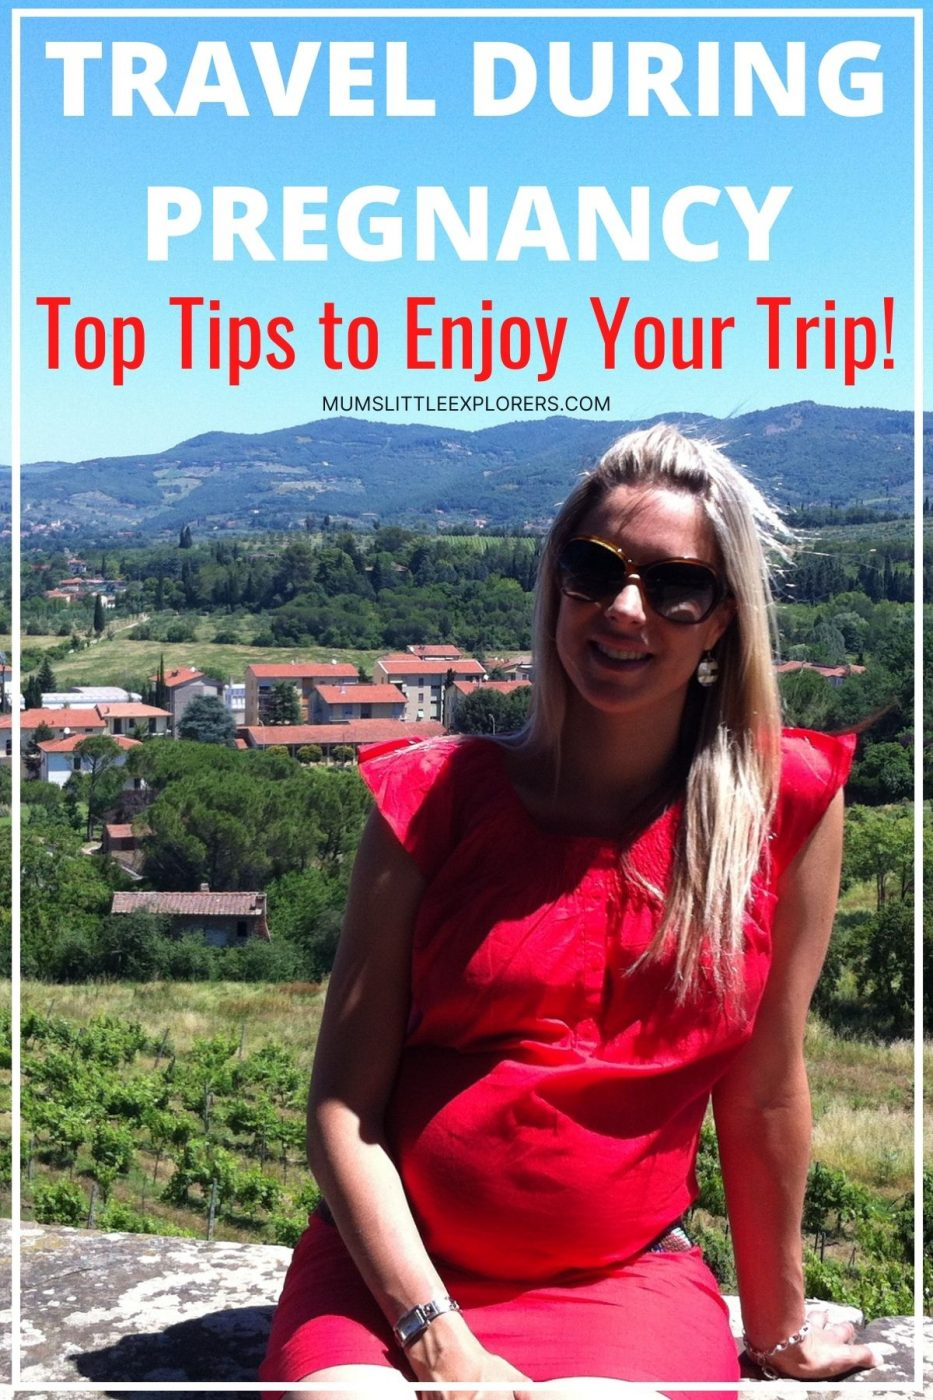 Travel during pregnancy - Tips and Advice